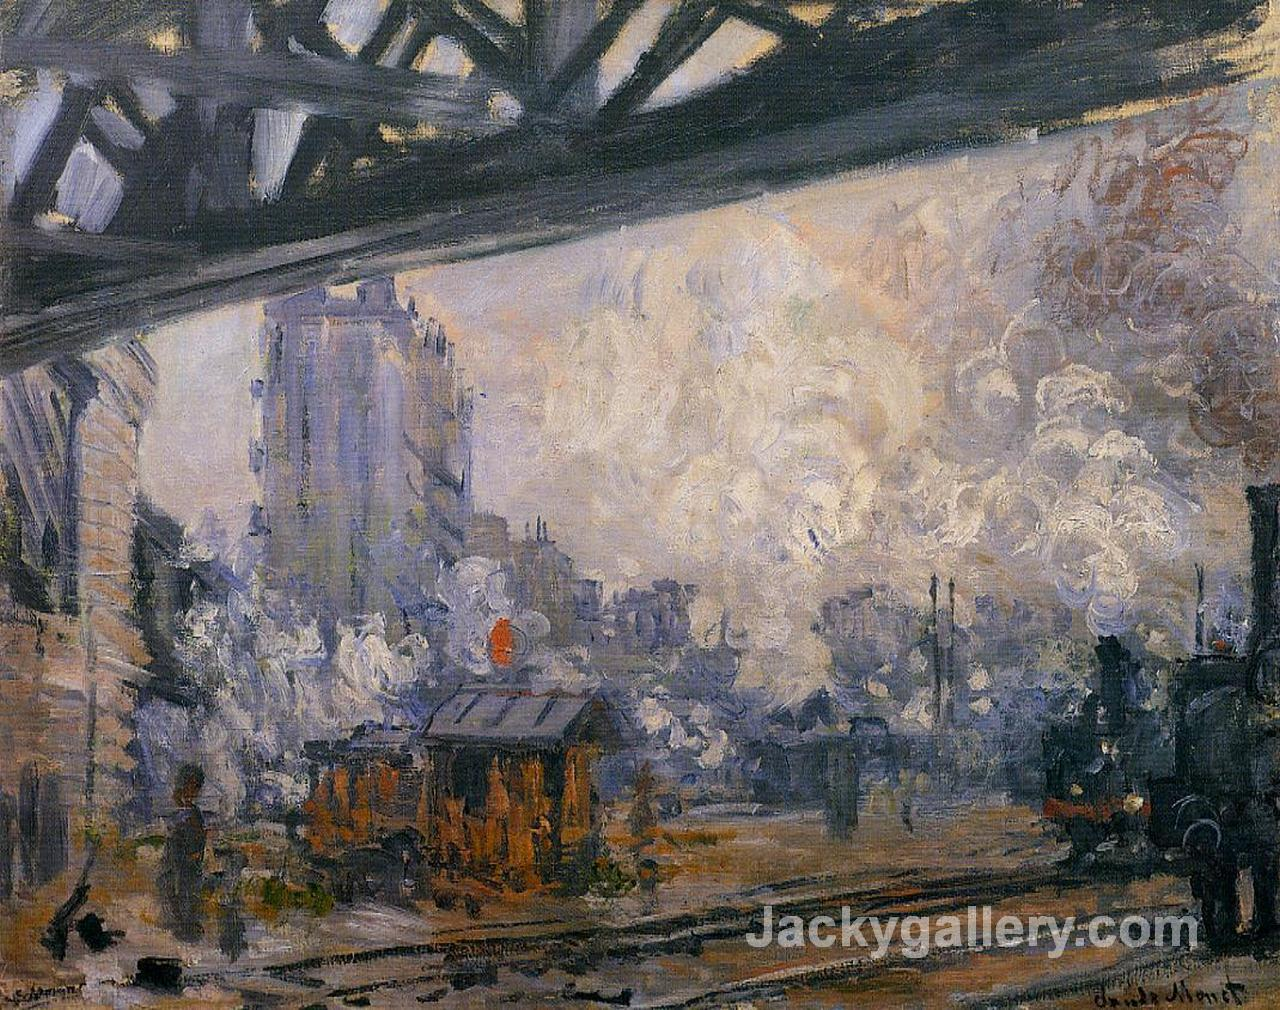 Saint-Lazare Station, Exterior View by Claude Monet paintings reproduction